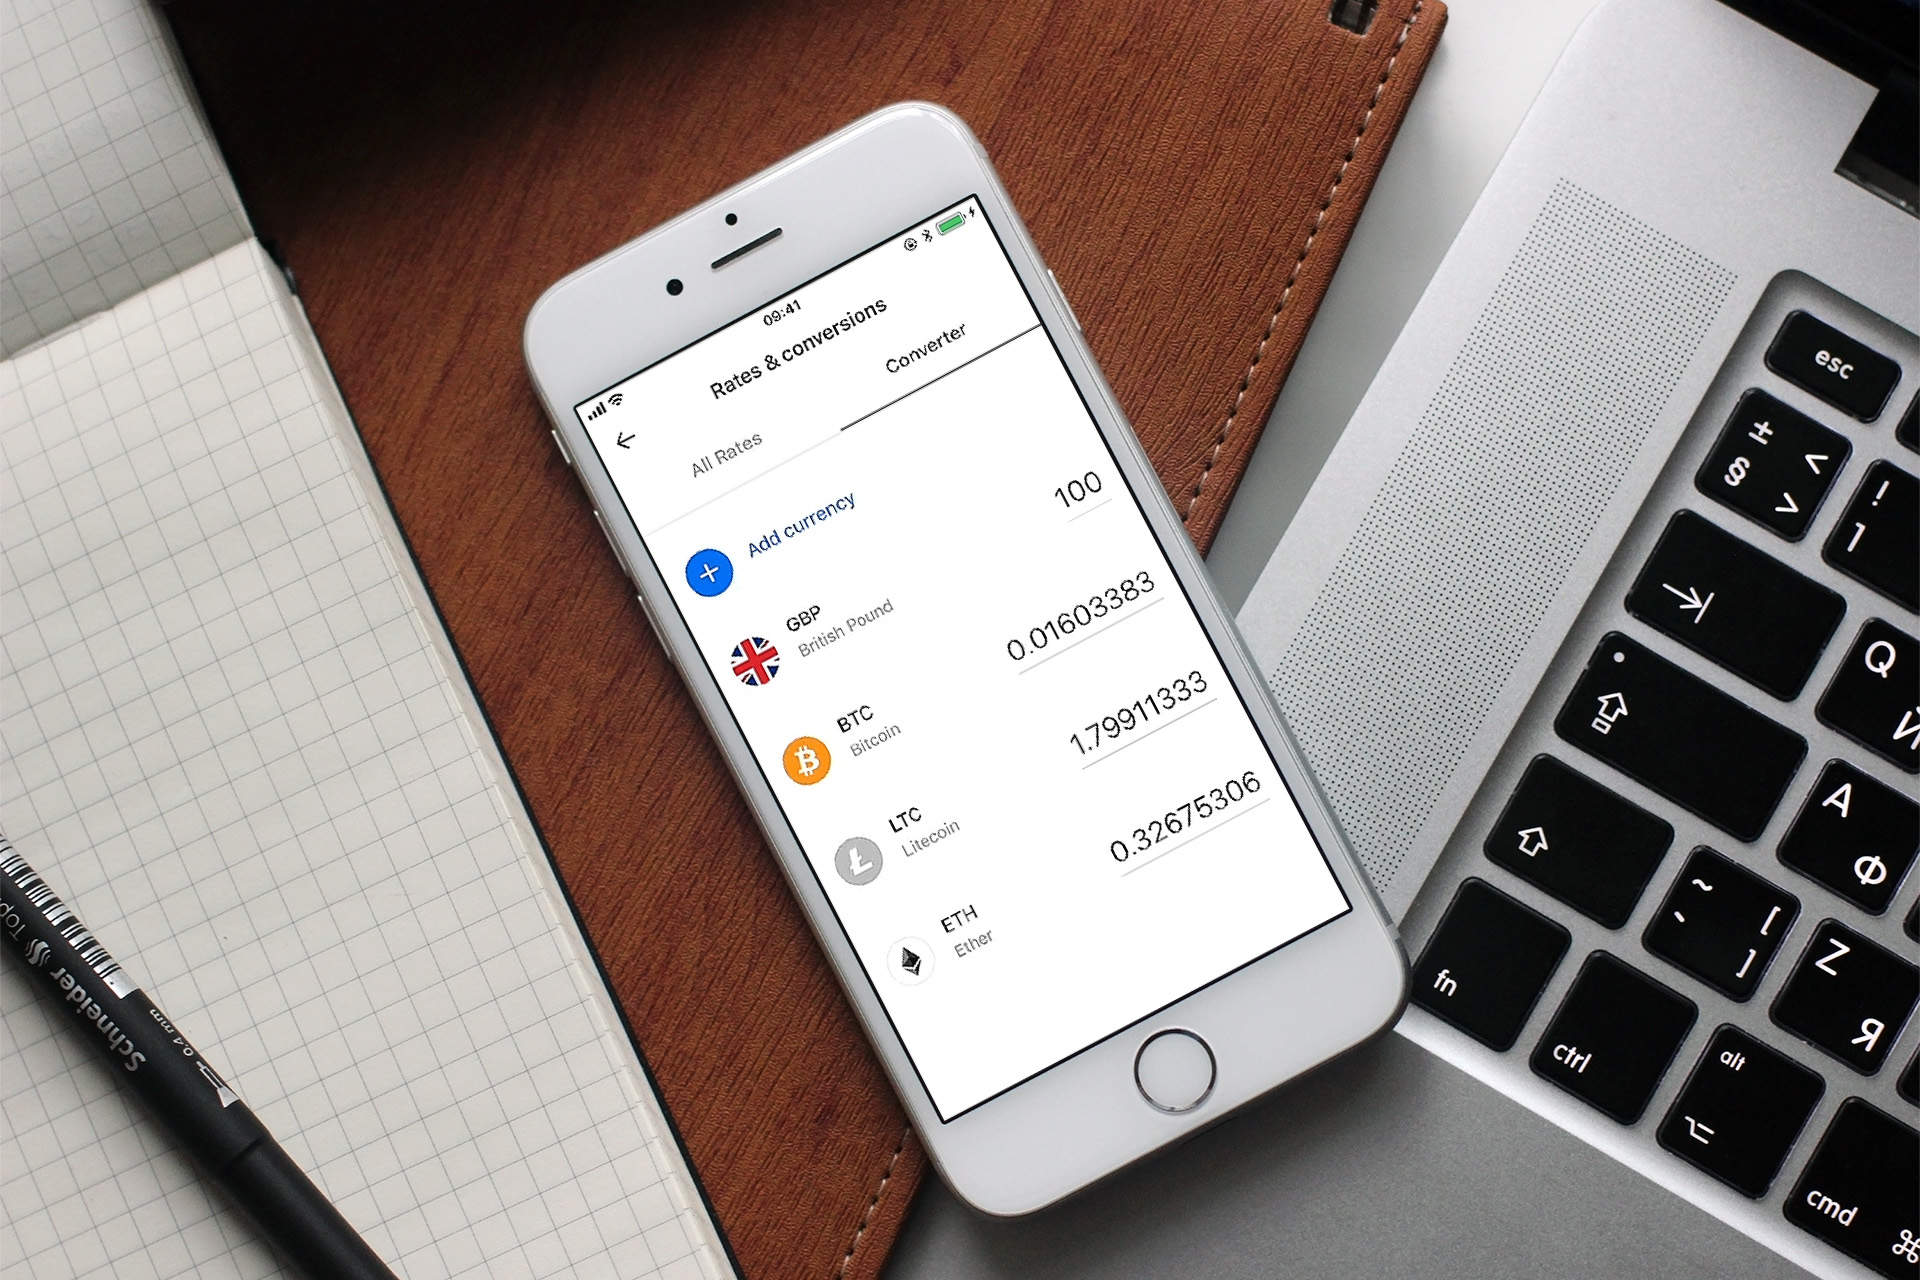 Revolut - UK mobile banking apps: which one is right for you?